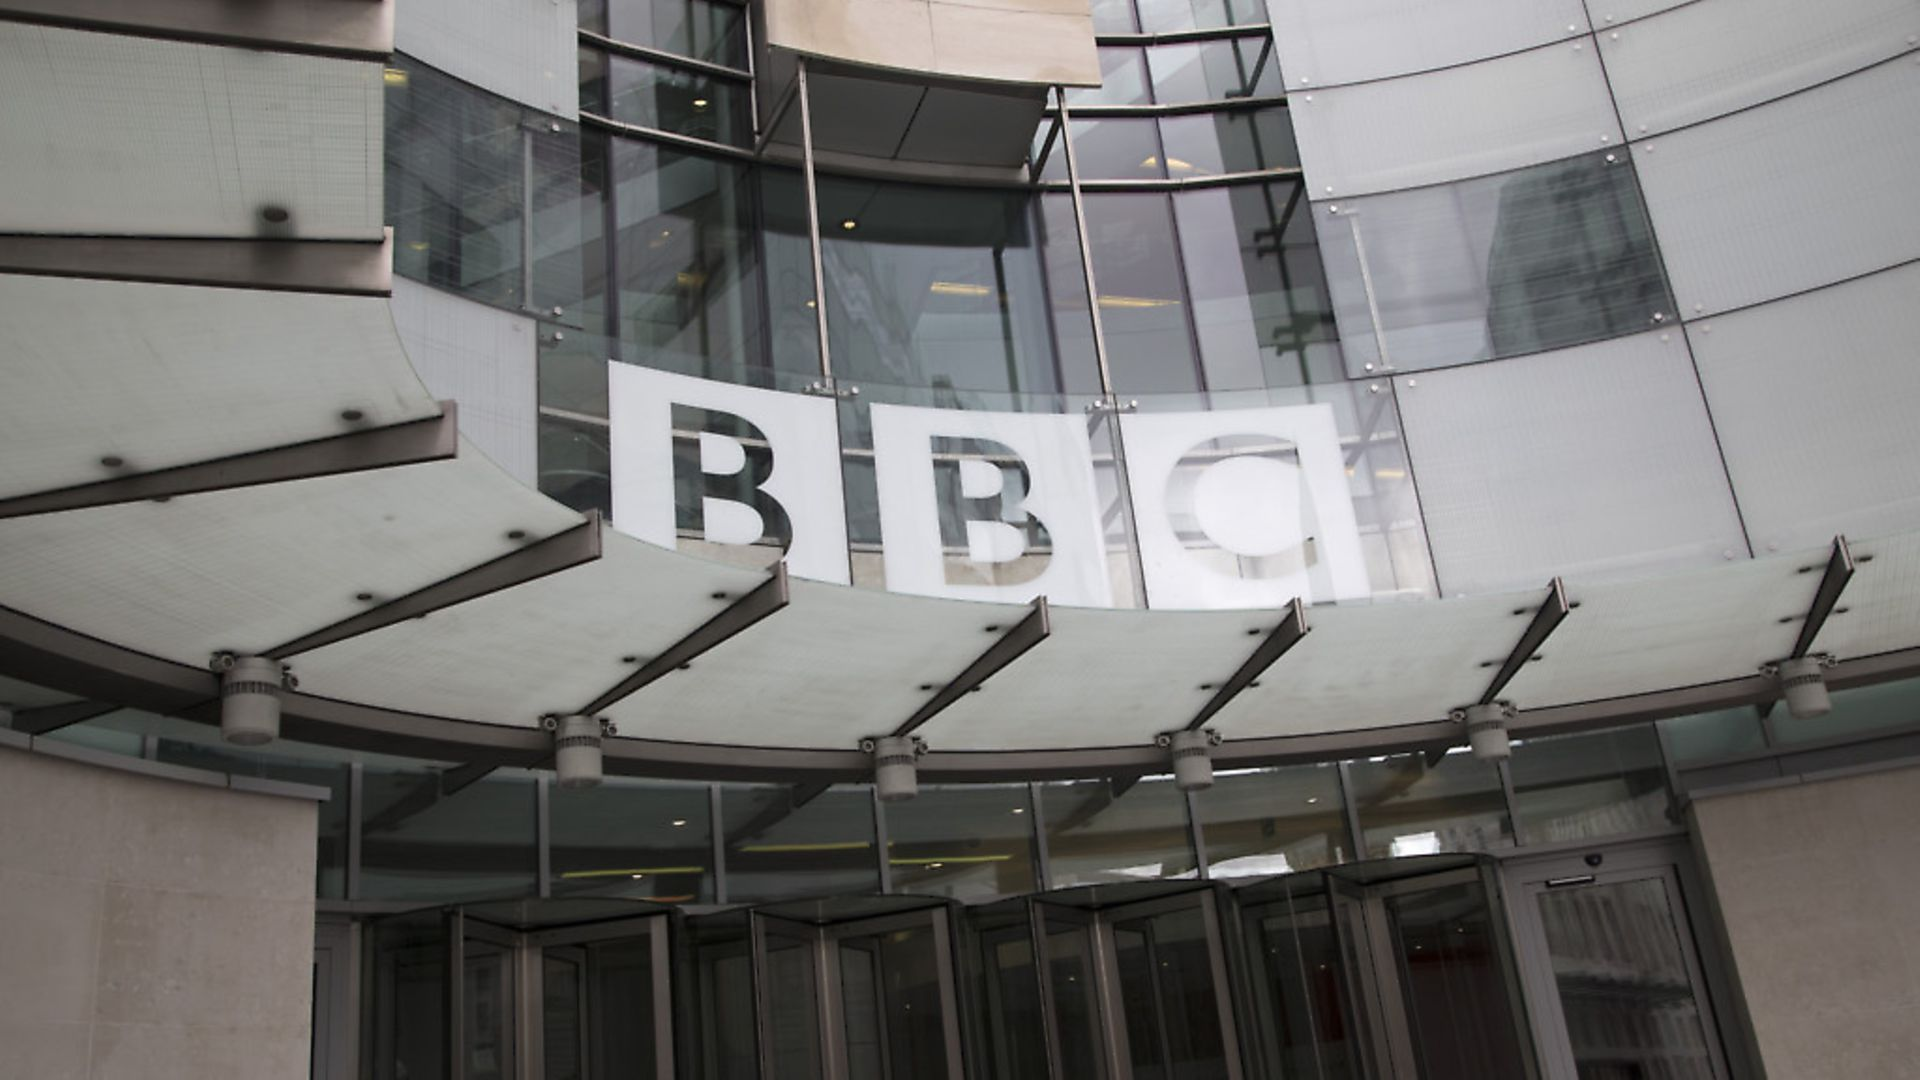 BBC headquarters, BBC Broadcasting House, Portland Place, London. (photo by Mike Kemp/In Pictures via Getty Images) - Credit: In Pictures via Getty Images